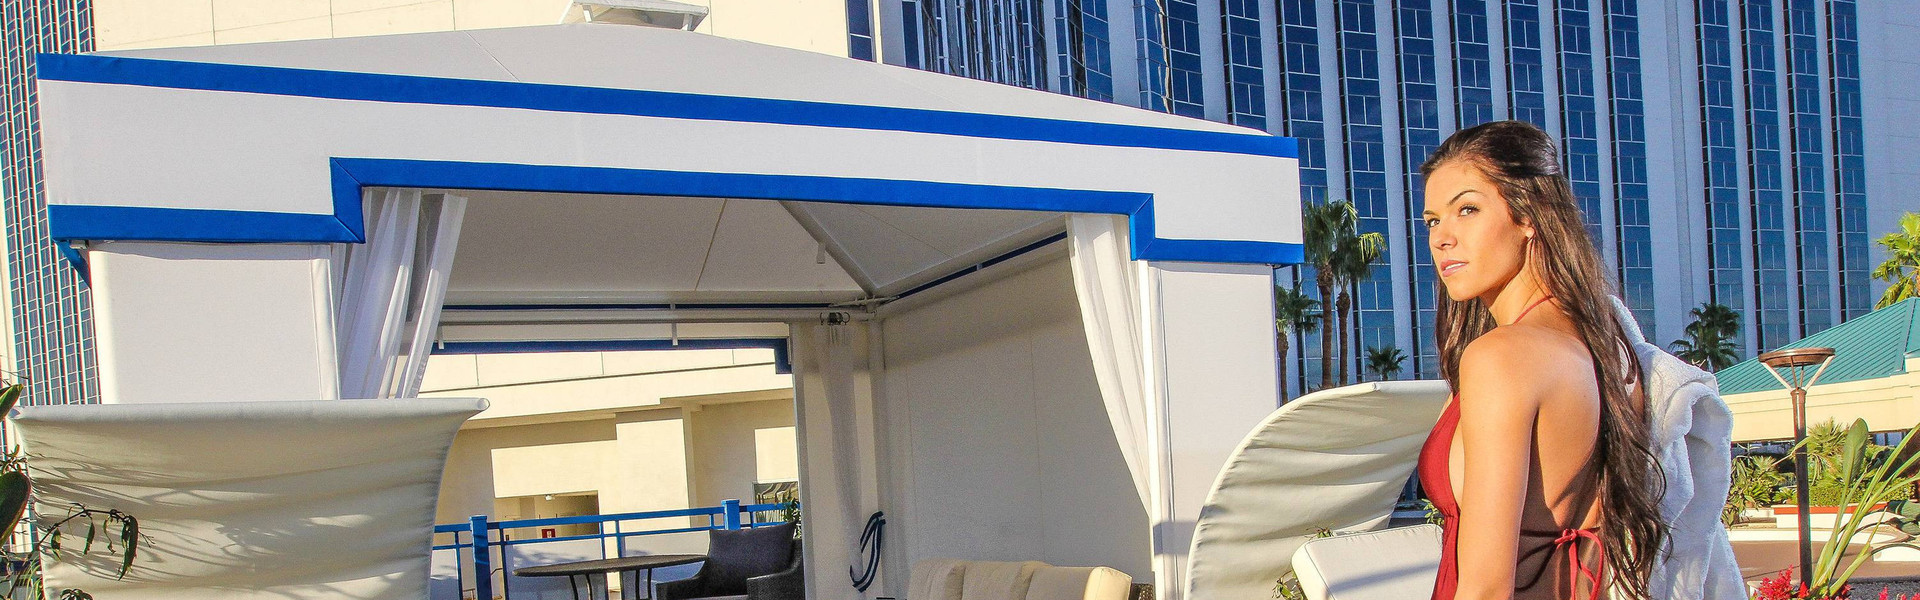 Las Vegas Monorail Hotels with Pool and Cabanas | Westgate Las Vegas Resort & Casino